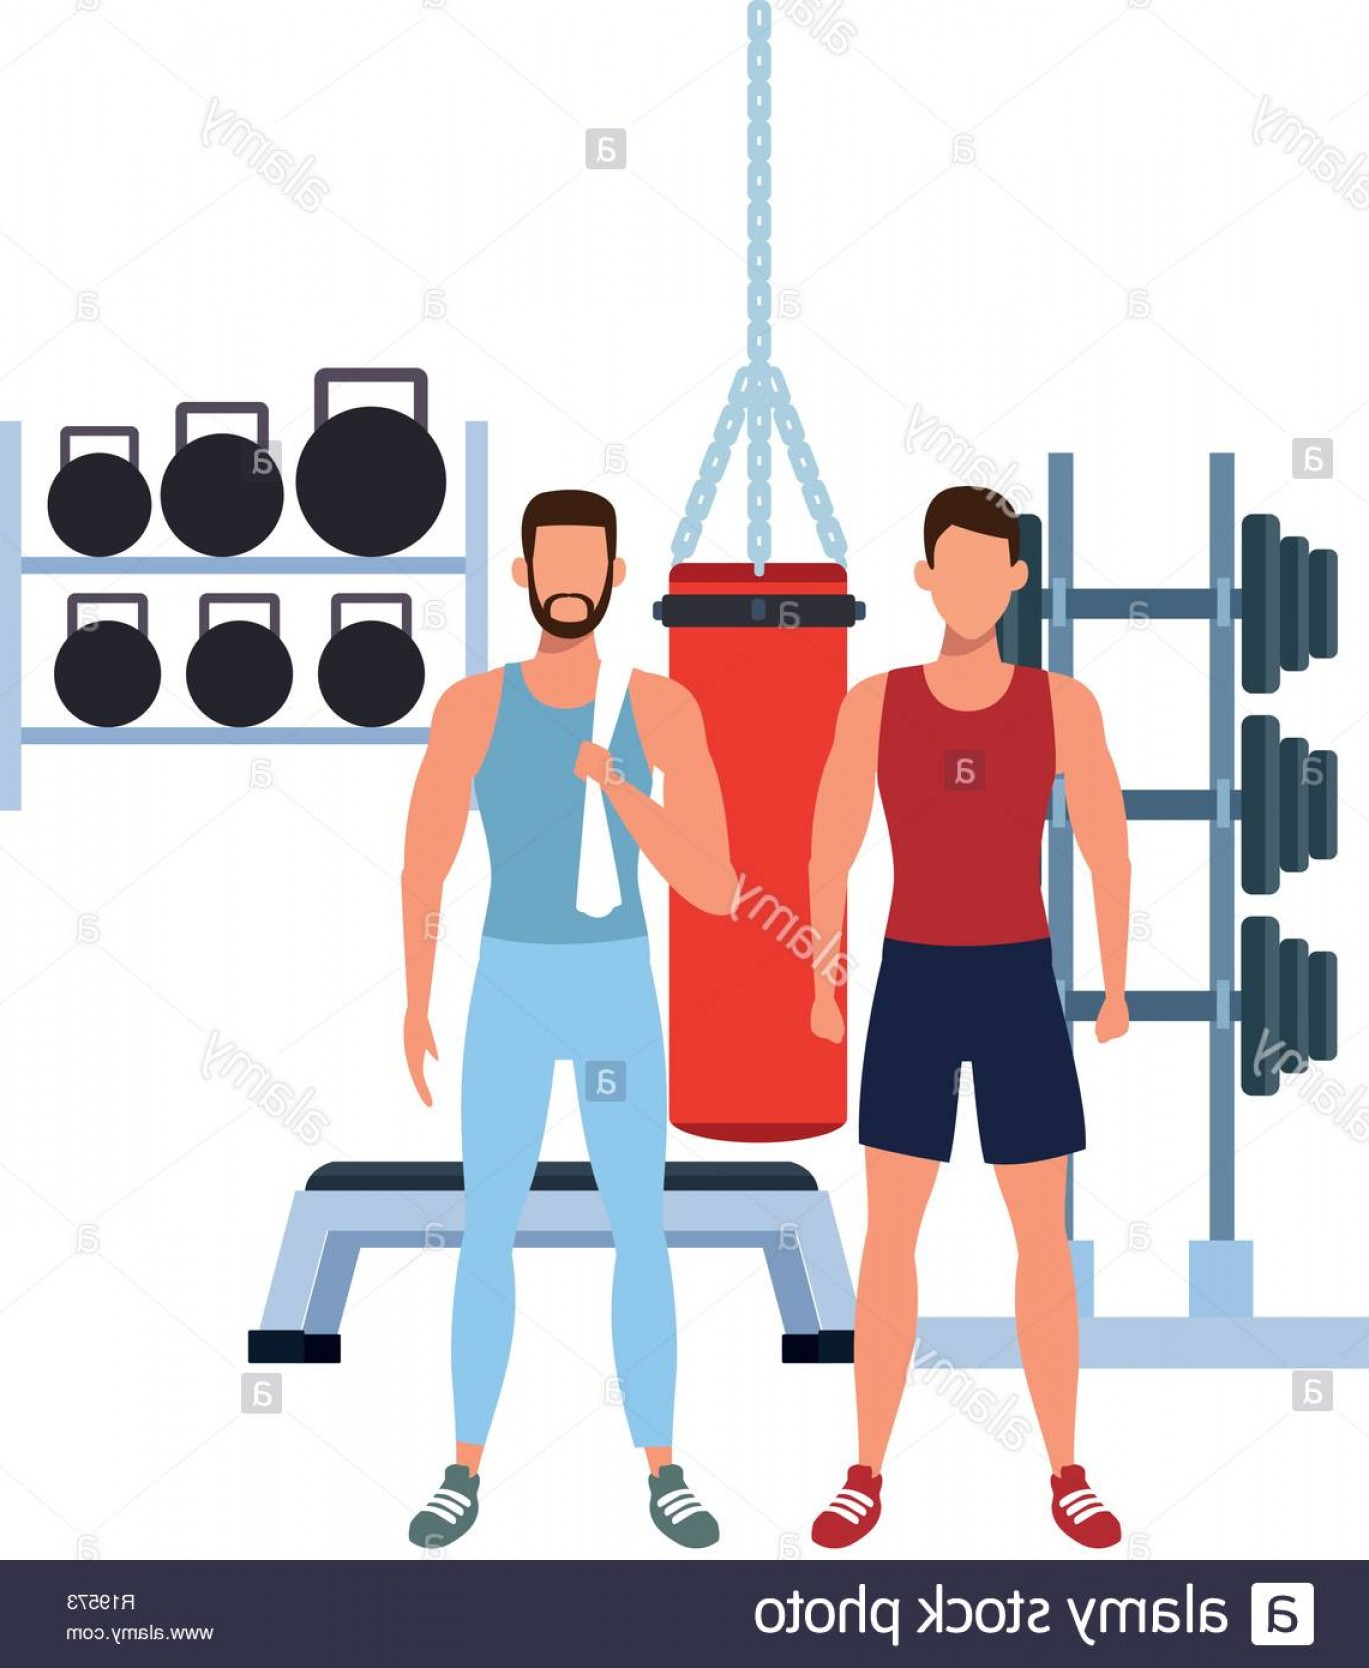 Weight Lifting Vector Graphics: Fitness Men Training Box And Weight Lifting Vector Illustration Graphic Design Image